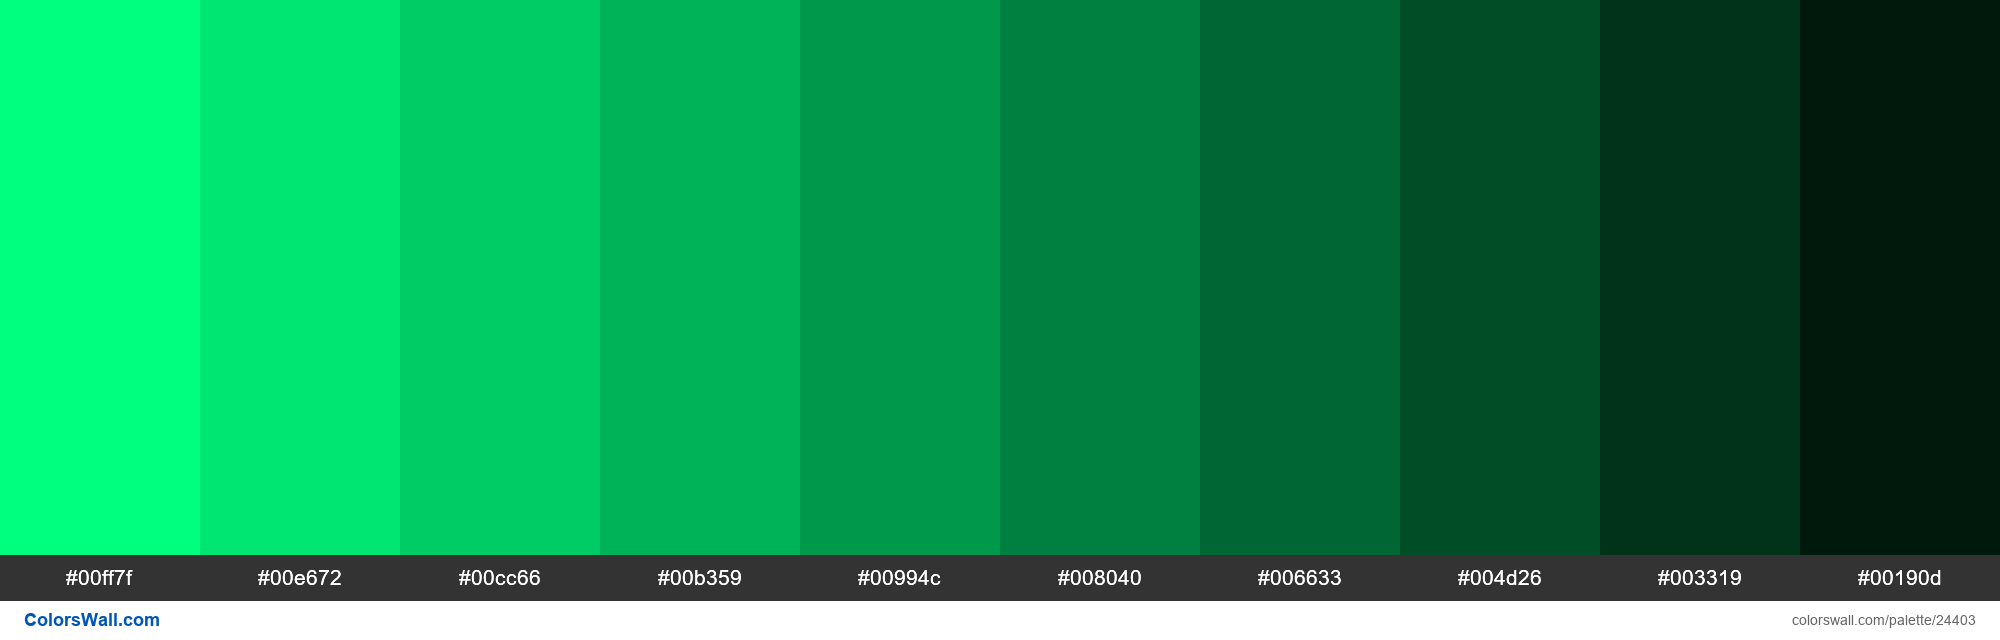 Shades of Spring Green #00FF7F hex color - #24403